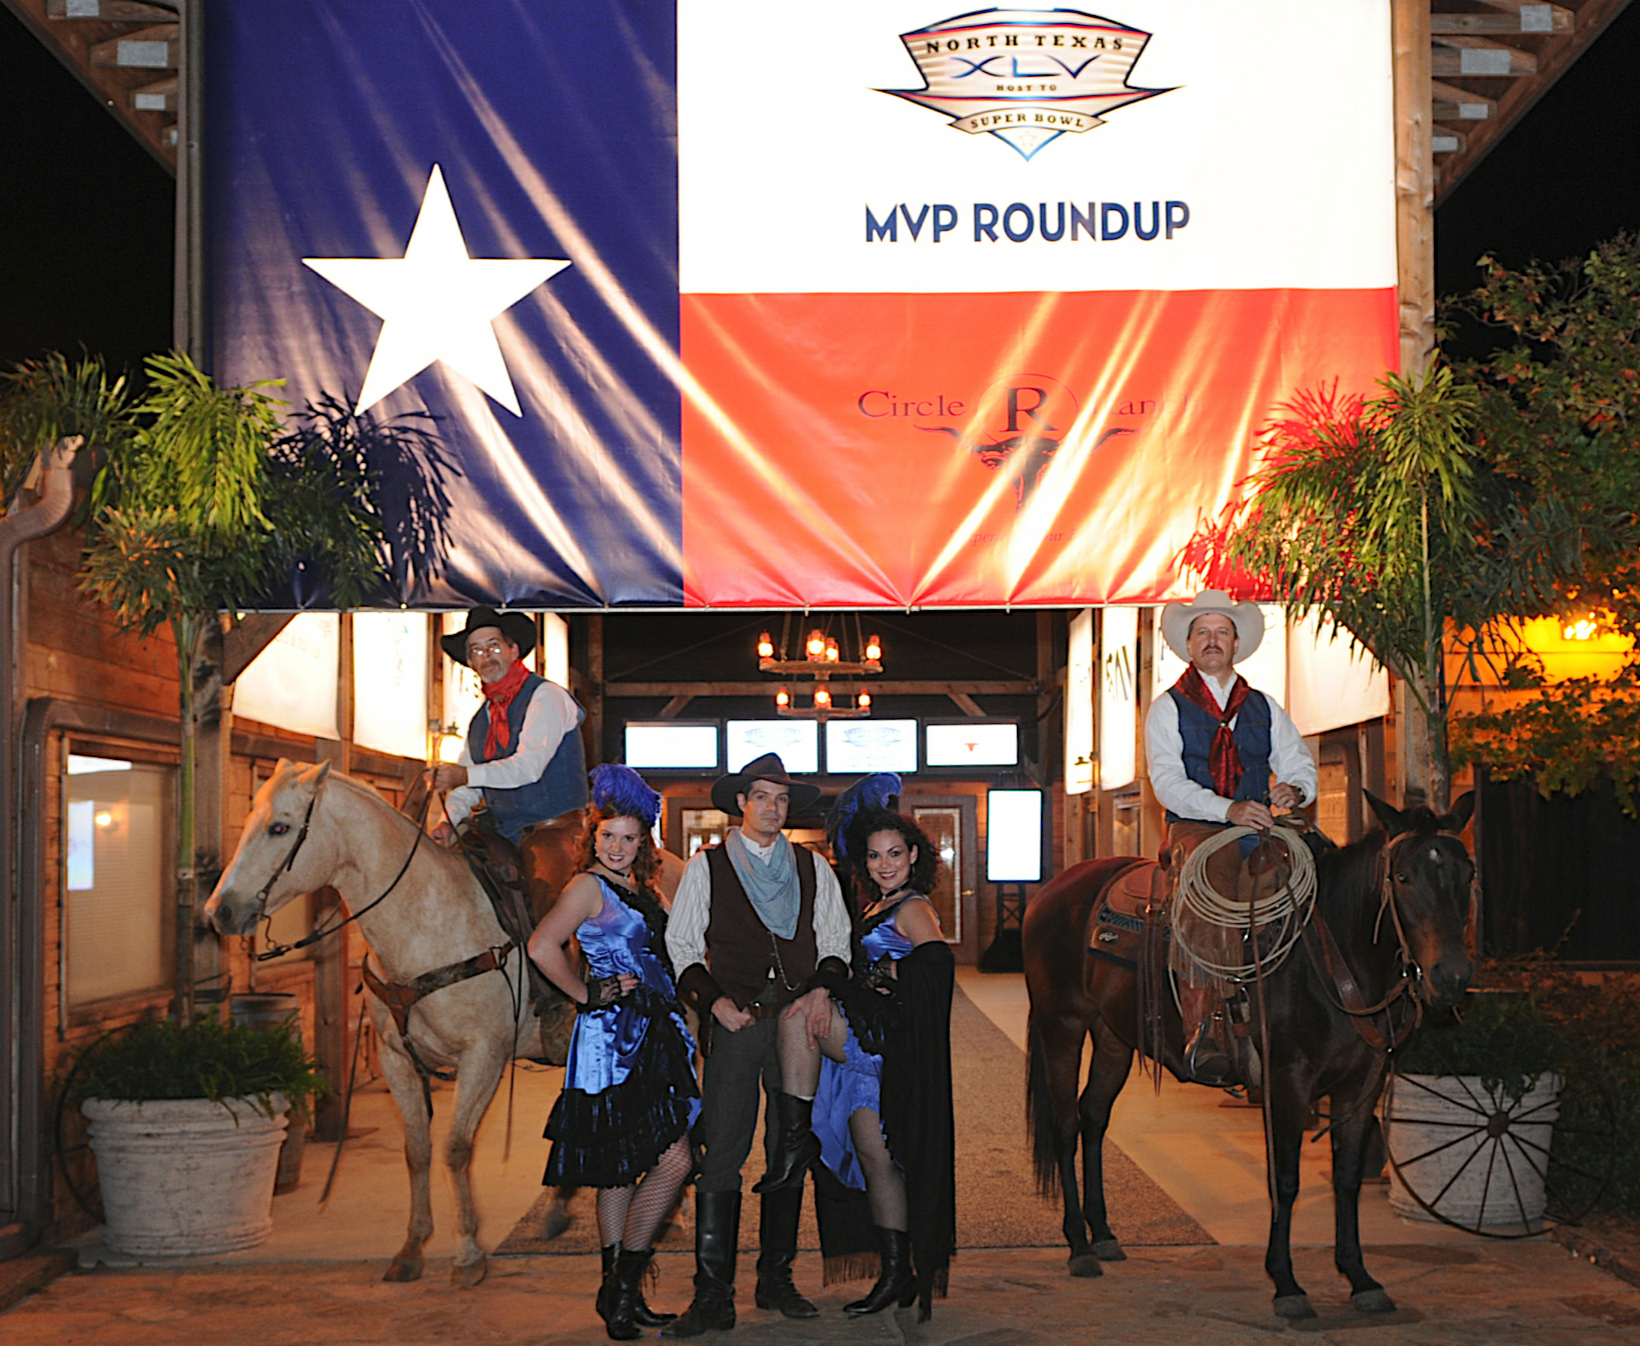 entry with cowboys & saloon girls